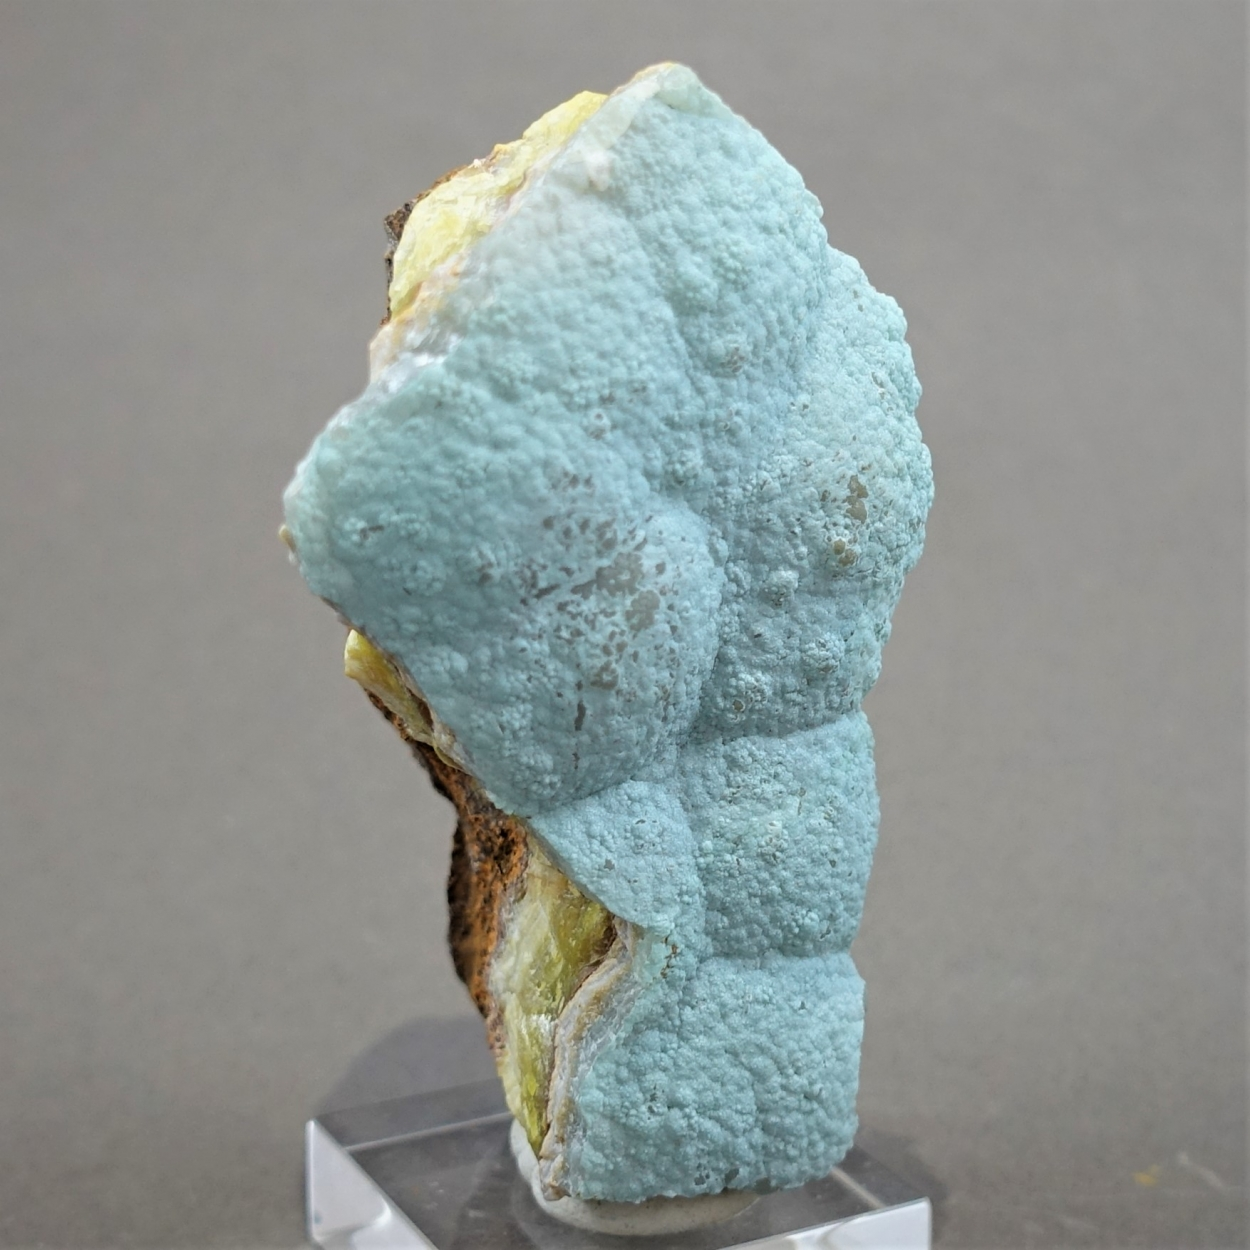 Cadmian Smithsonite